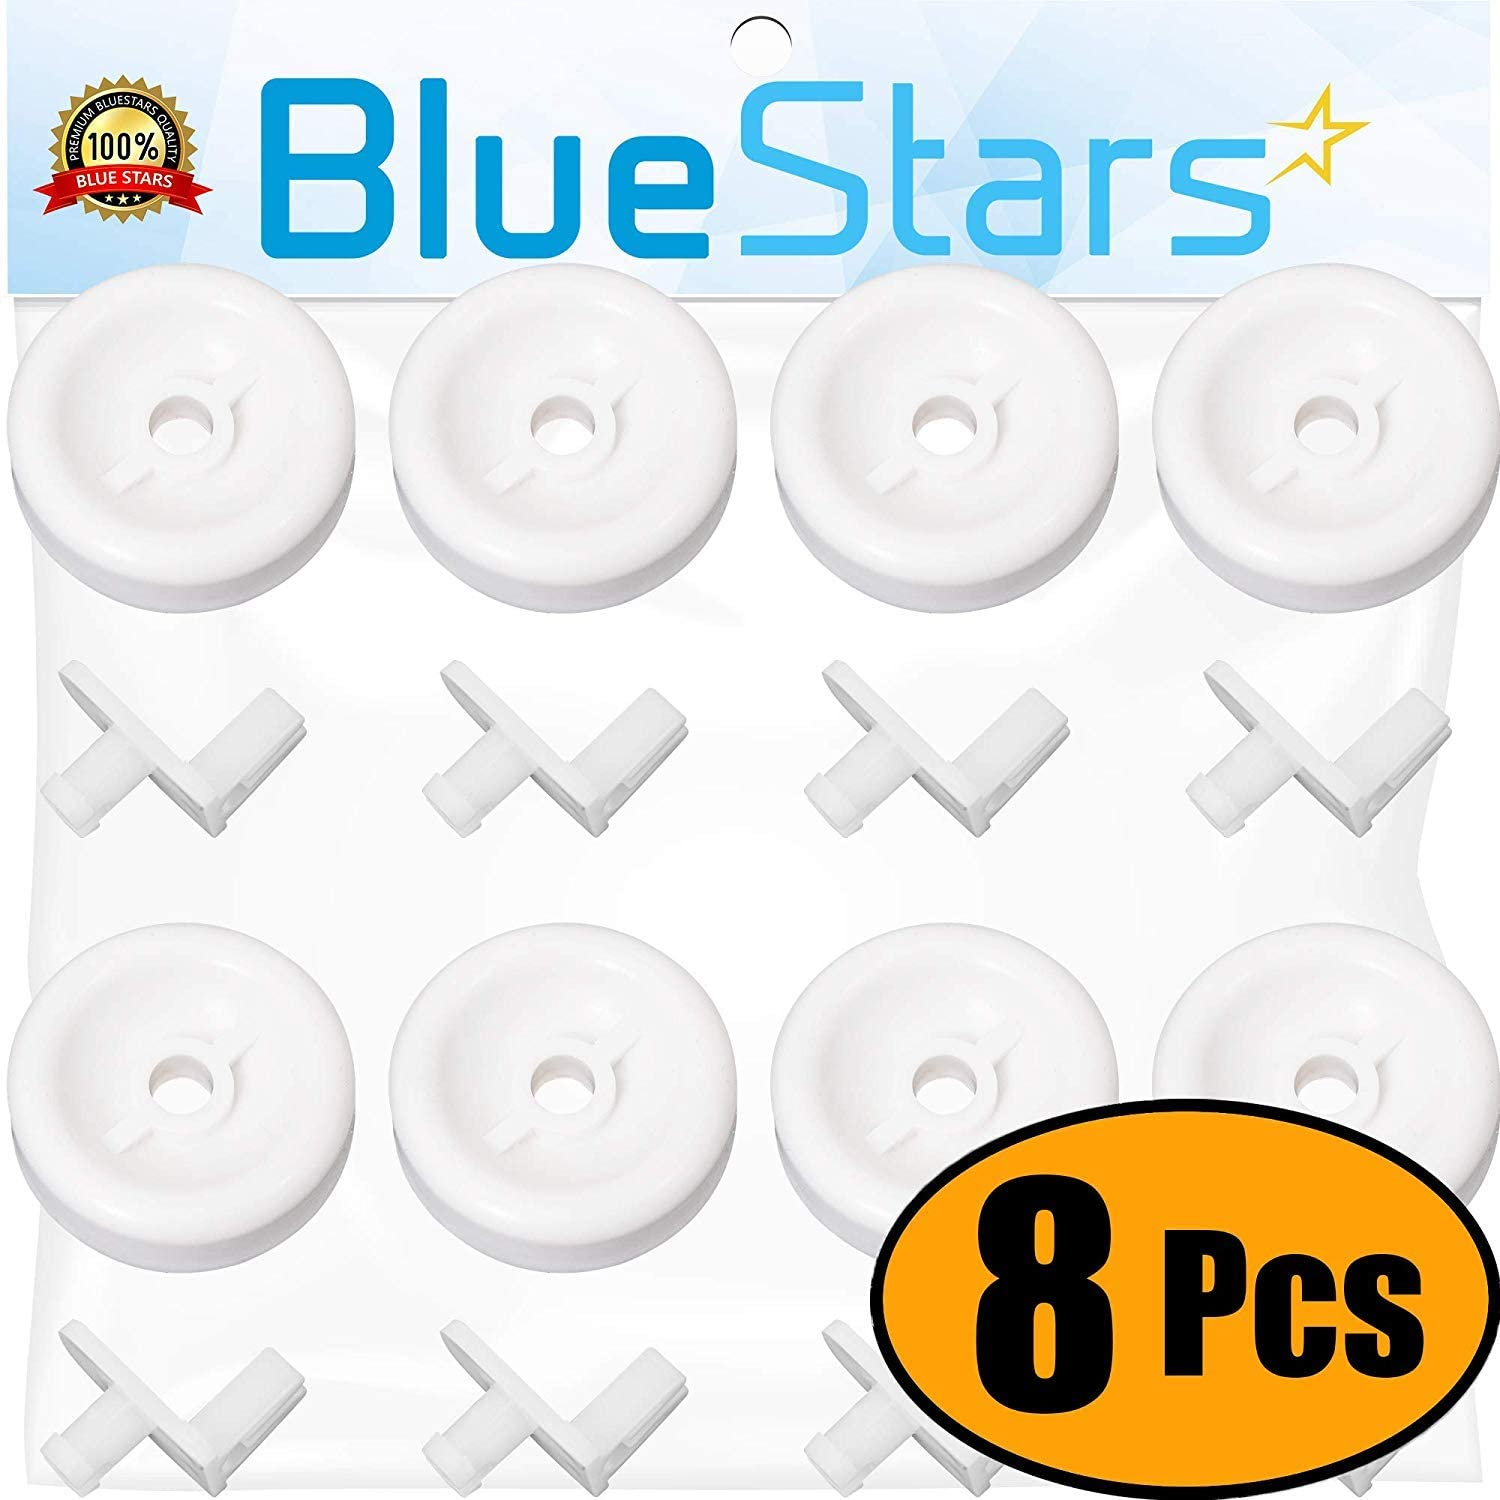 Ultra Durable WD35X21038 Dishwasher Lower Rack Roller Wheel and Stud Kit by Blue Stars - Exact Fit for GE Hotpoint Kenmore Dishwashers - Replaces WD12X10267 PS11726733 AP5986365 - PACK OF 8